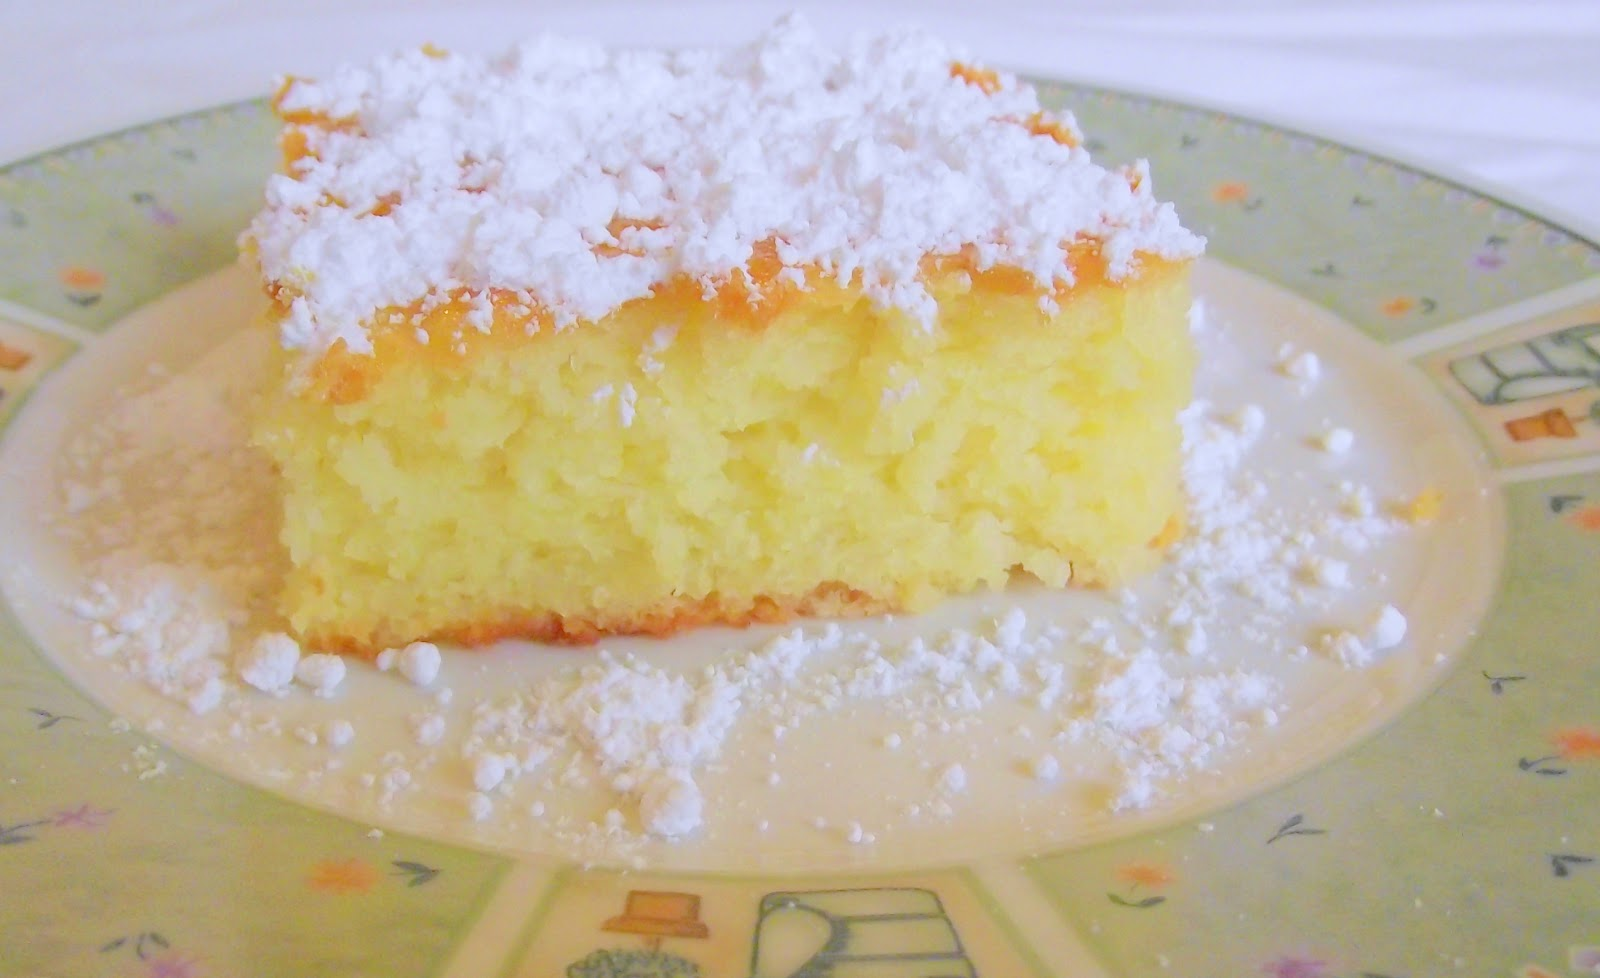 A View at Five-Two: Lemon Cake/Bars - 2 ingredients